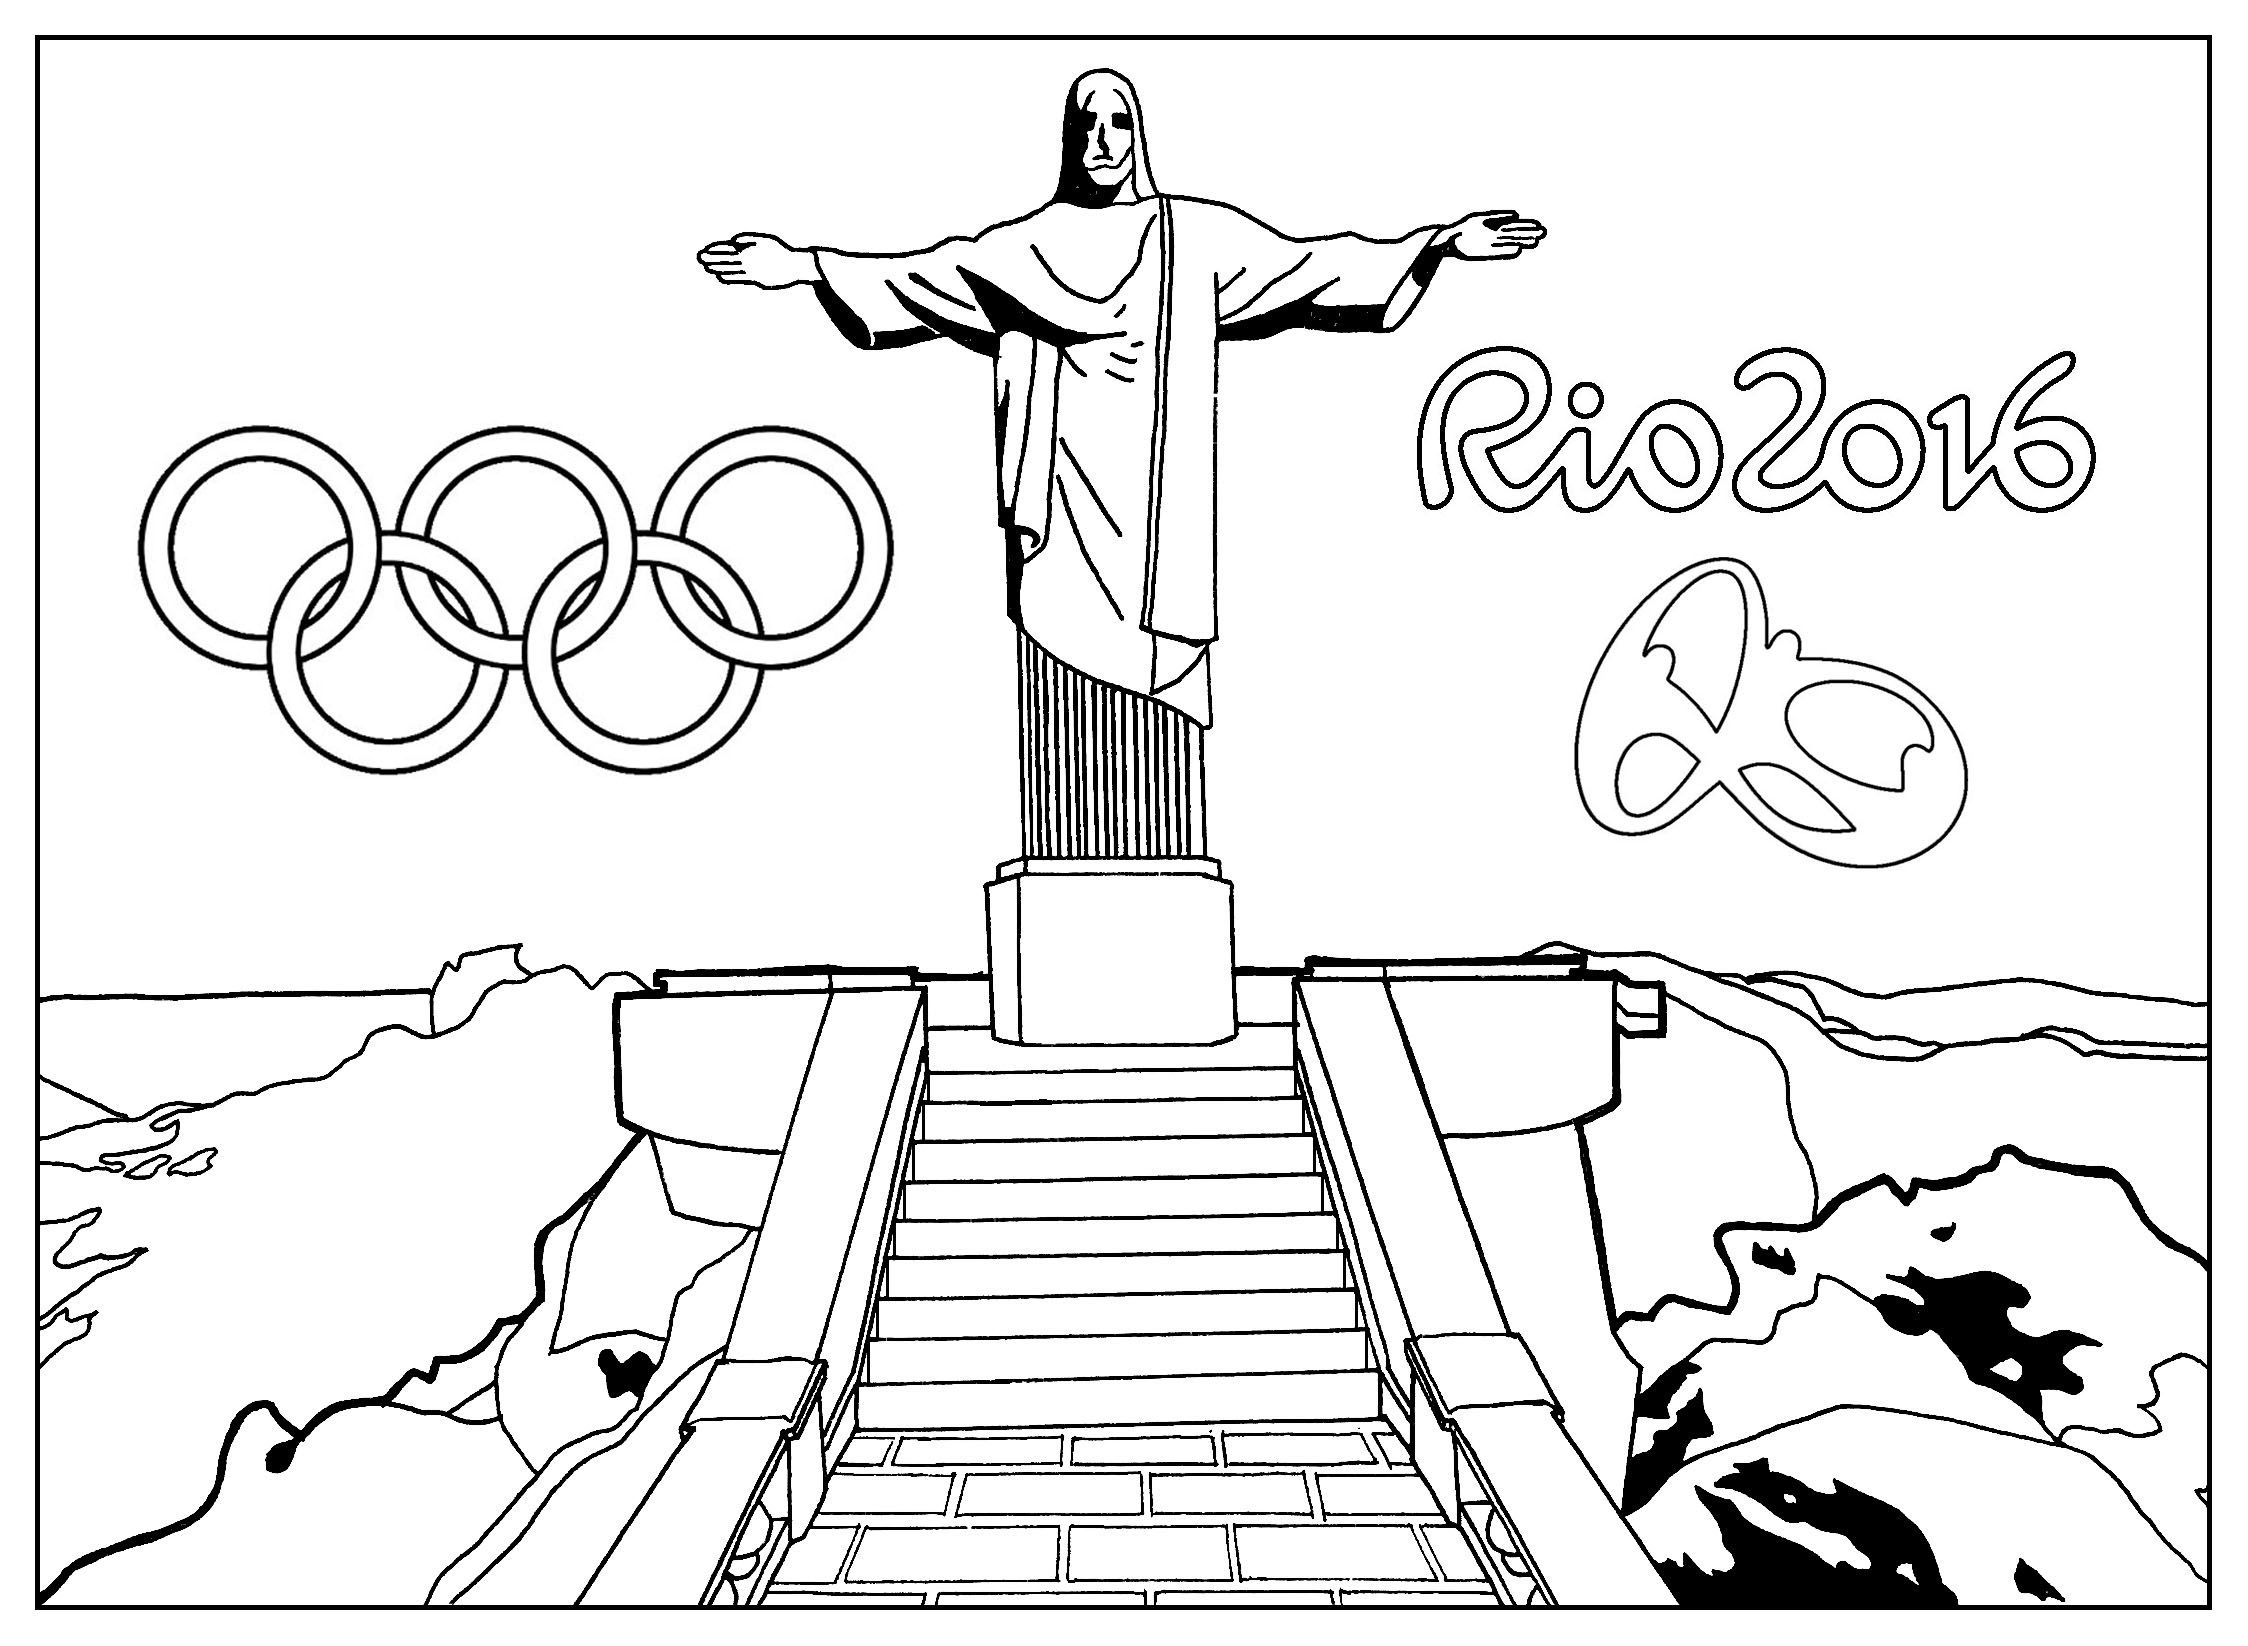 Free Coloring Page Coloring Adult Rio 2016 Olympic Games Christ